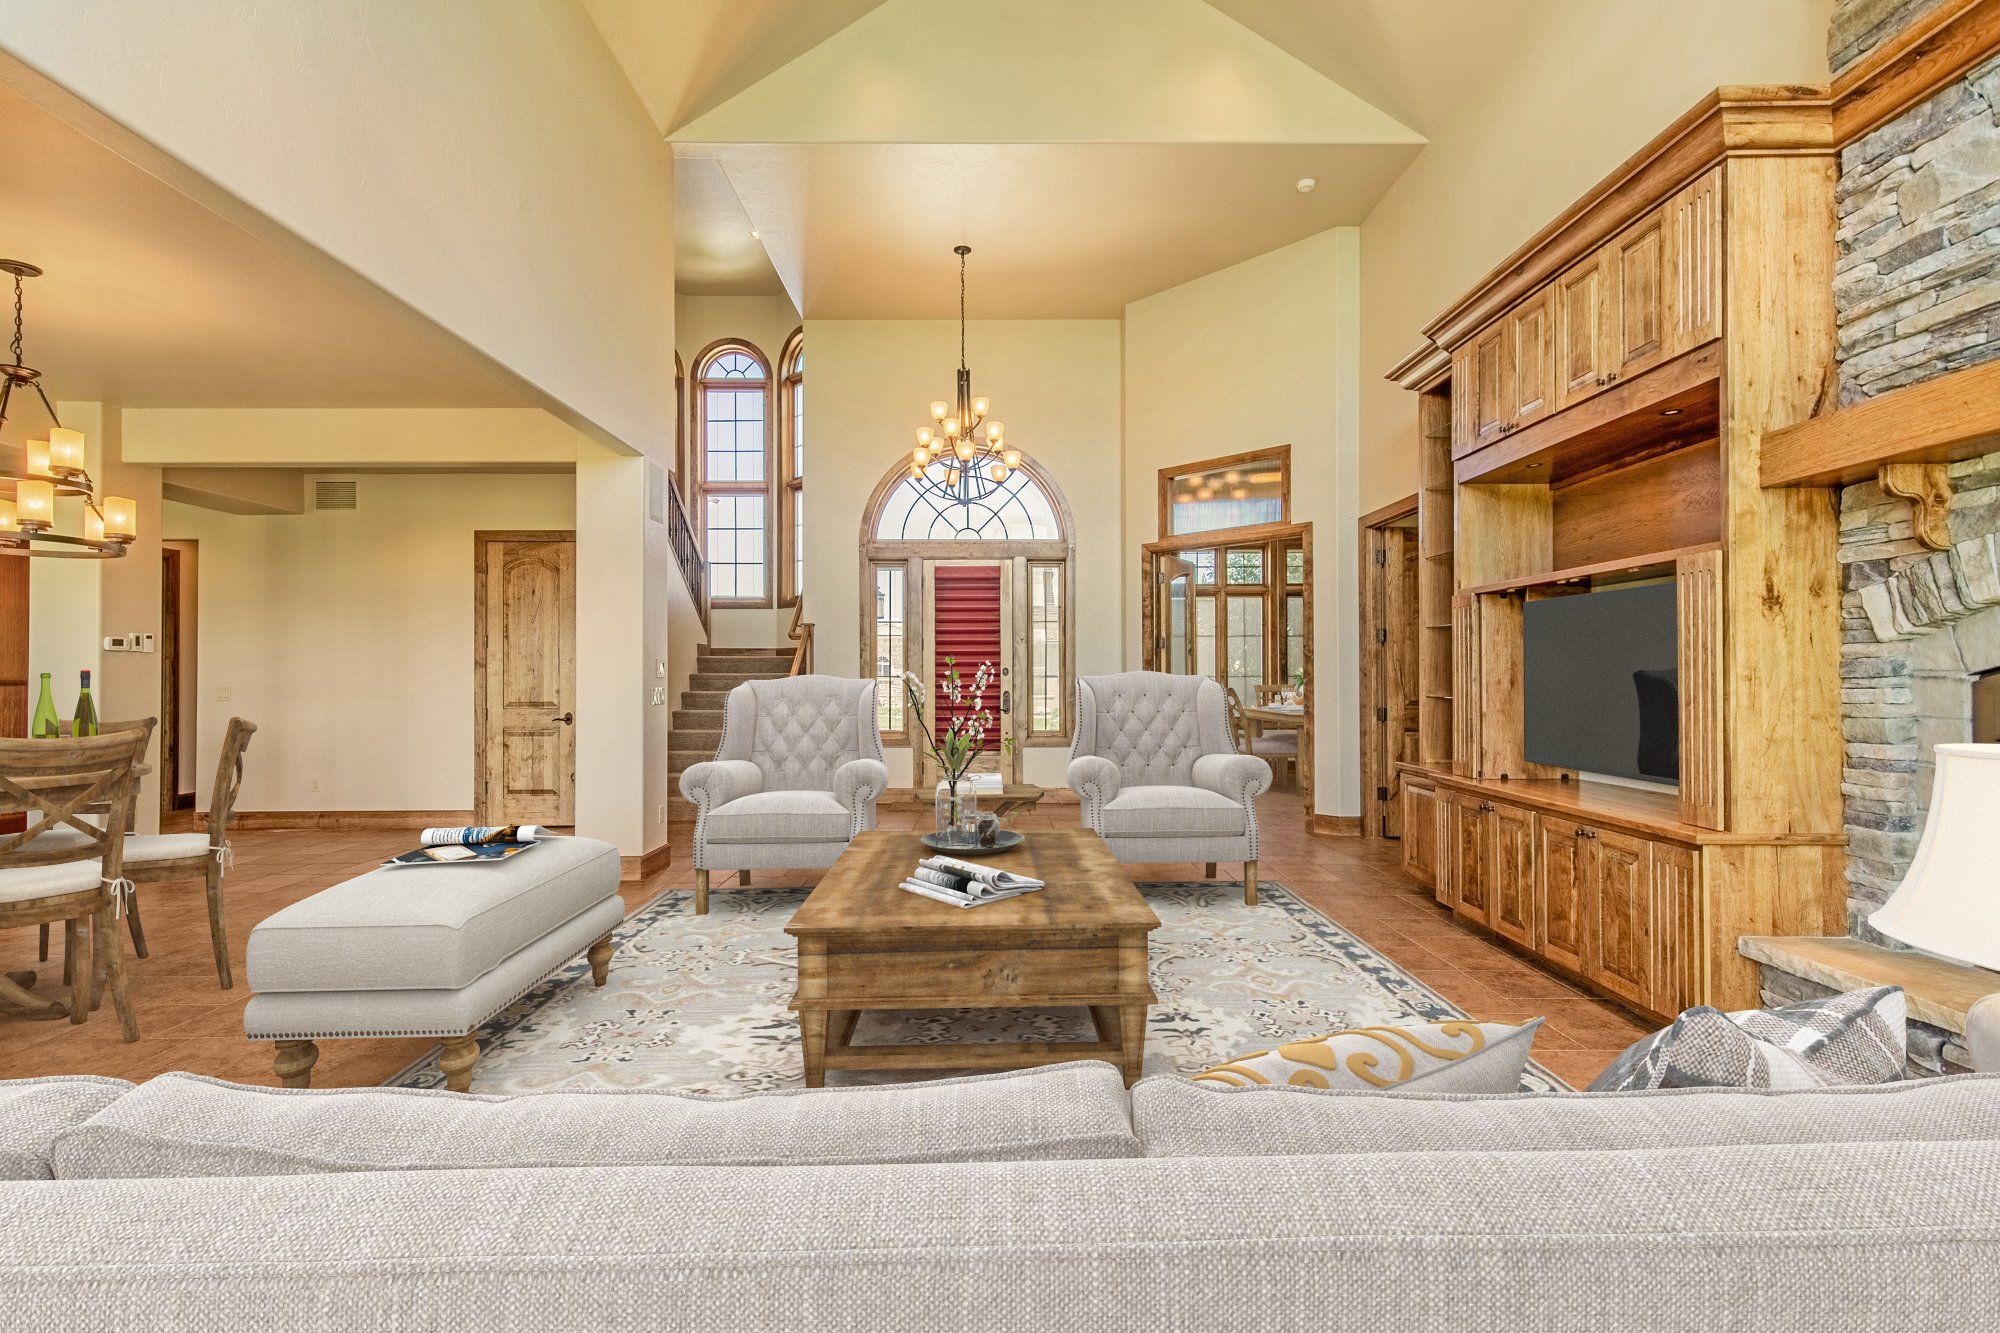 Open Concept Living Room - 924 Courthouse Peak Lane Montrose, CO 81403 - Atha Team Golf Luxury Real Estate